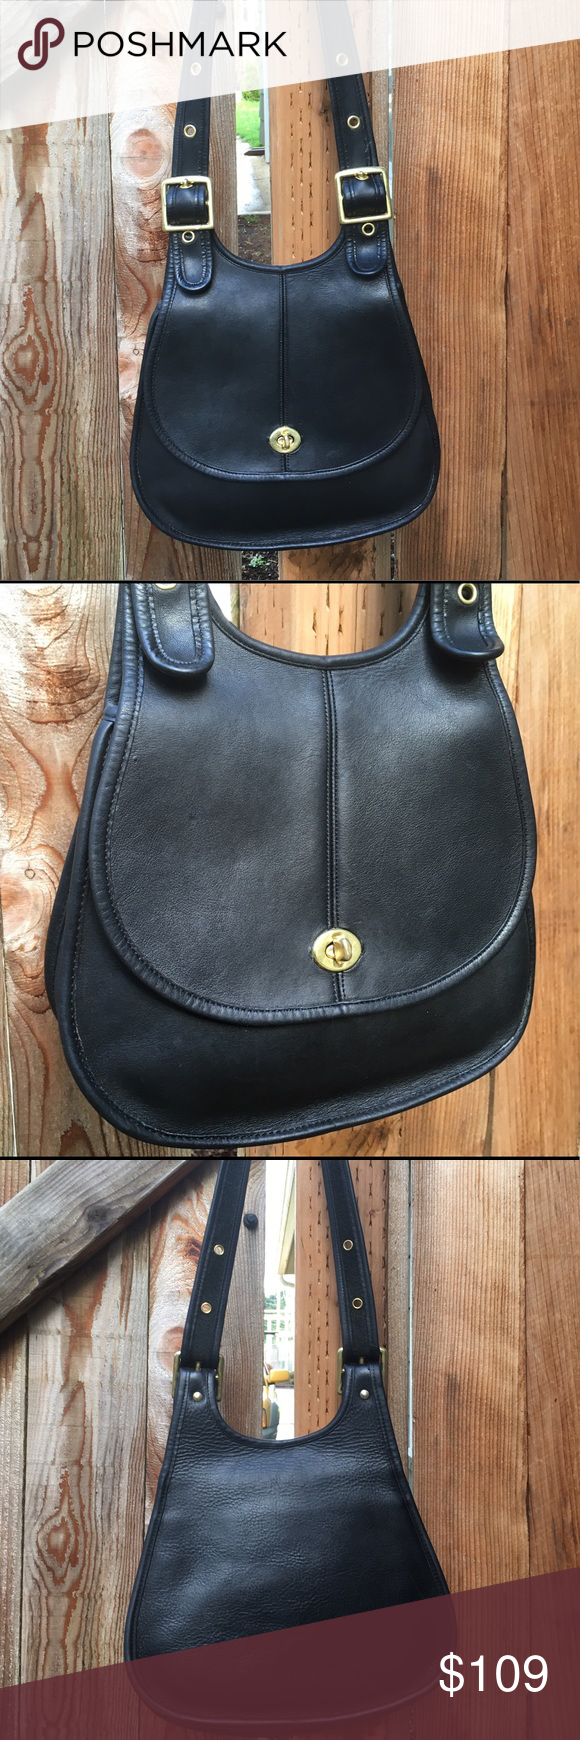 Vintage Coach Crescent Hippie Saddle Bag Black NYC Vintage Coach Crescent Bag  Style 9235, No. 823-3848 Made in New York City   Black glove tanned full-grain leather. Solid brass adjustable buckles, strap fits comfortably on the shoulder (too short for crossbody). One interior slip pocket. No hang tag.   I have cleaned, reshaped and conditioned this bag. Shows normal signs of vintage wear including scratches, scuffs and tarnish. The backside of the bag has a pebbled texture. Inside looks…